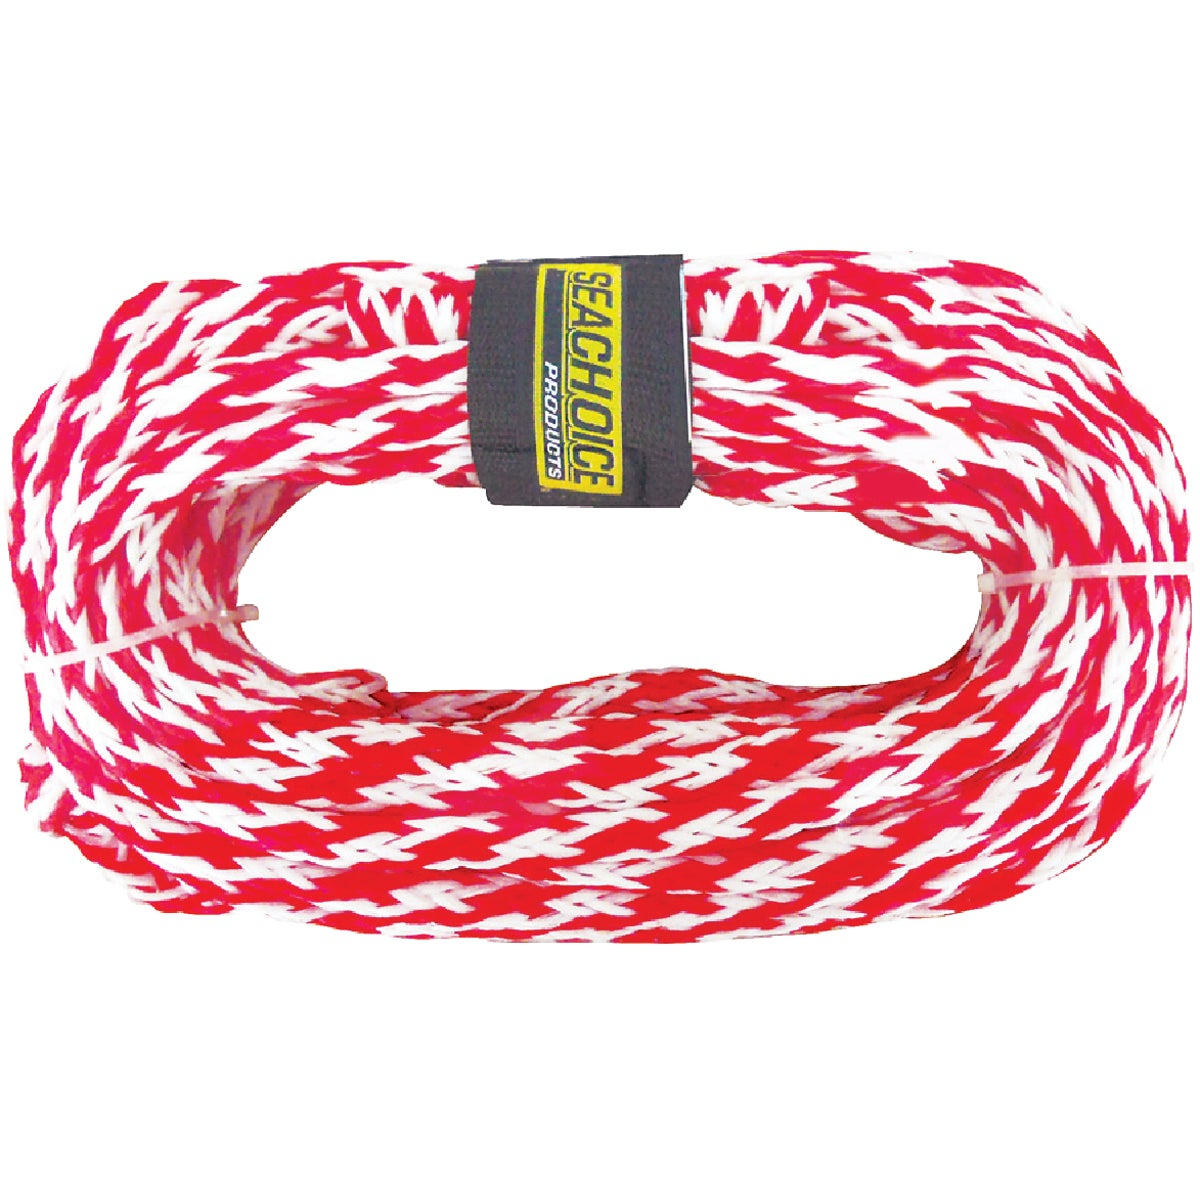 2 RIDER INFLTBL TOW ROPE - 86661 by Seachoice Prod